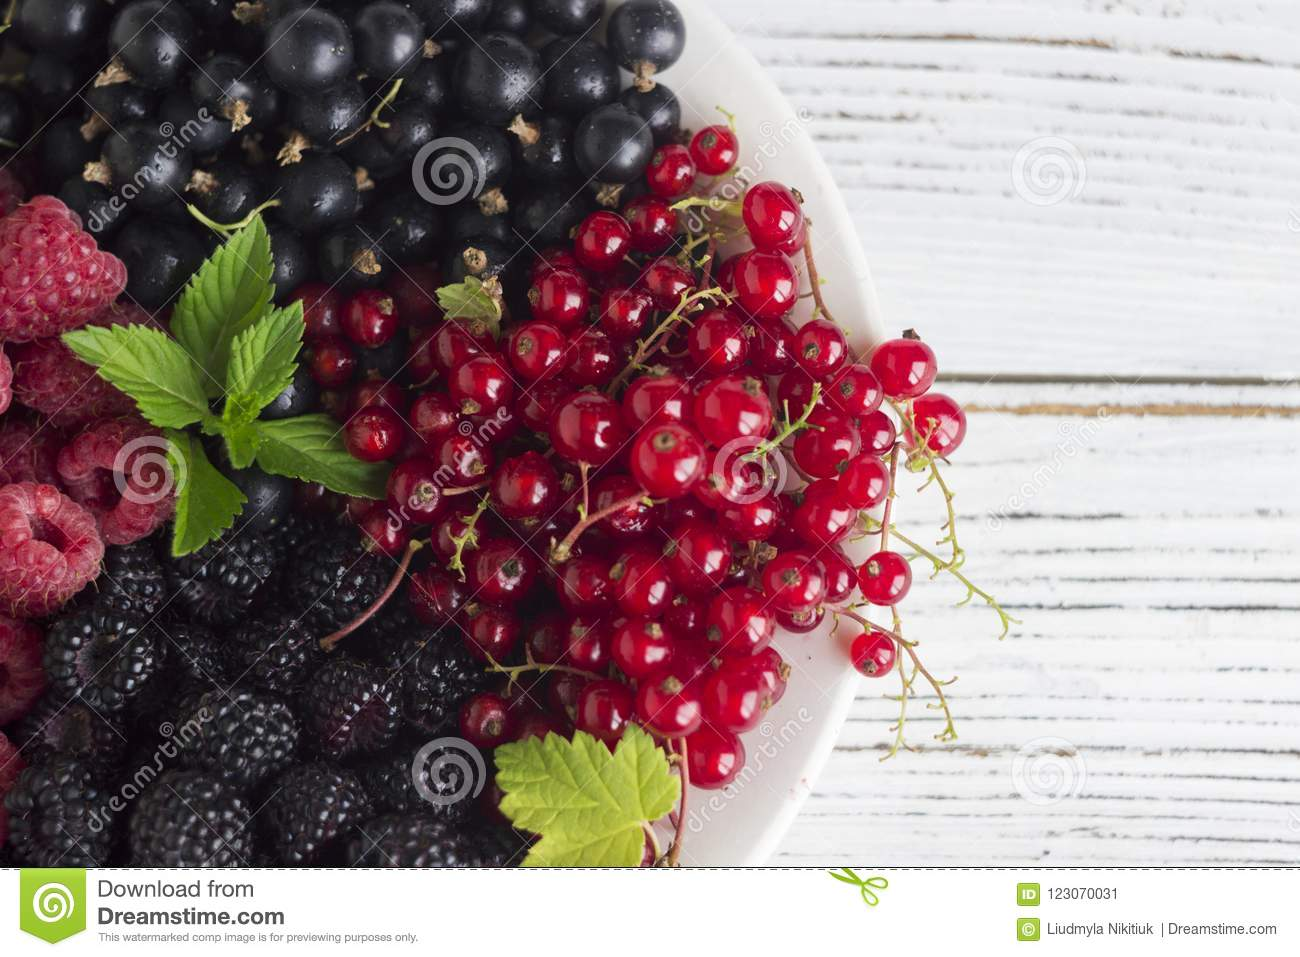 What is useful for currants